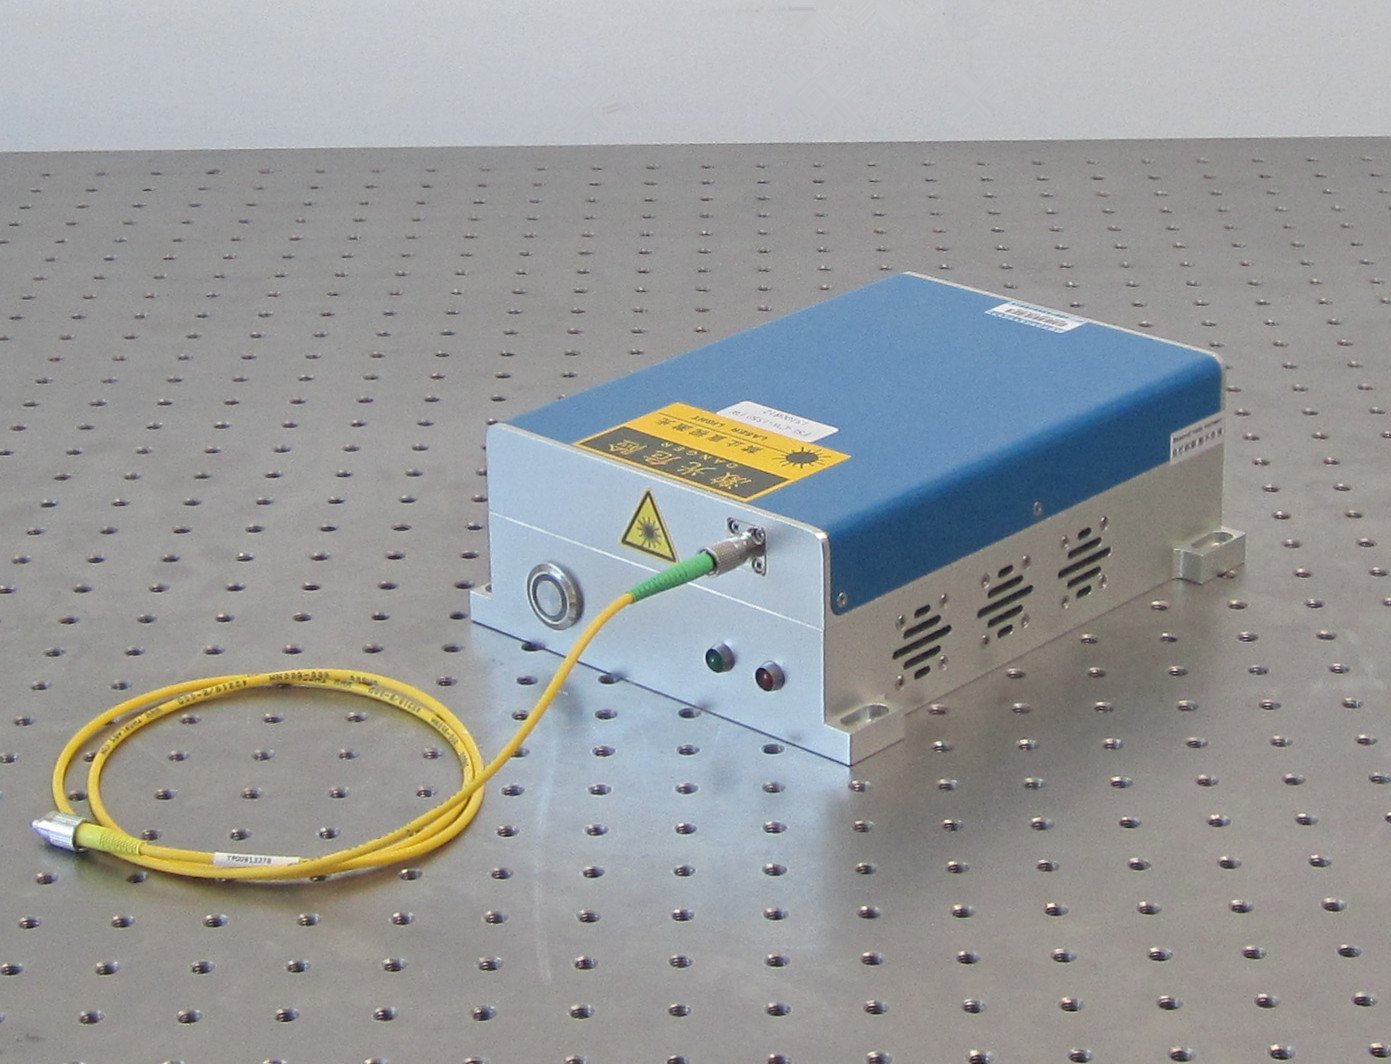 high output power stability laser,Single Longitudinal Mode Laser,OEM modular design laser,ultra compact laser,1550nm laser,1064nm laser,pump source laser,measurement laser